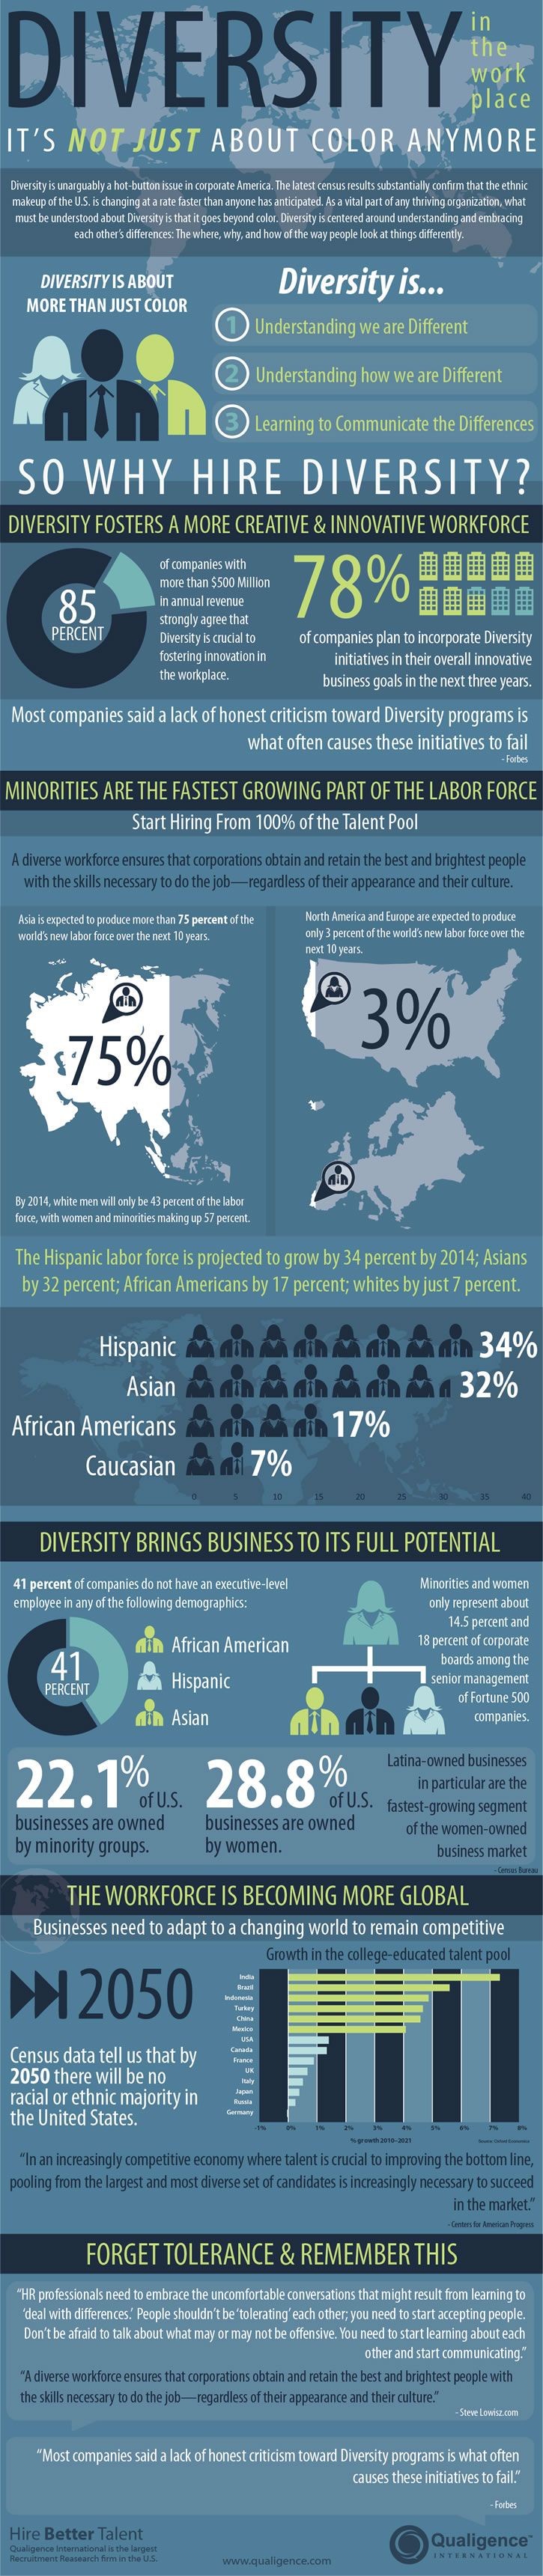 This item deals with diversity in the workplace and emphasizes the need to have a diverse workforce. It explains what diversity is and provides useful statistics. It also touches on how diversity transcends beyond color and deals more with embracing the differences.